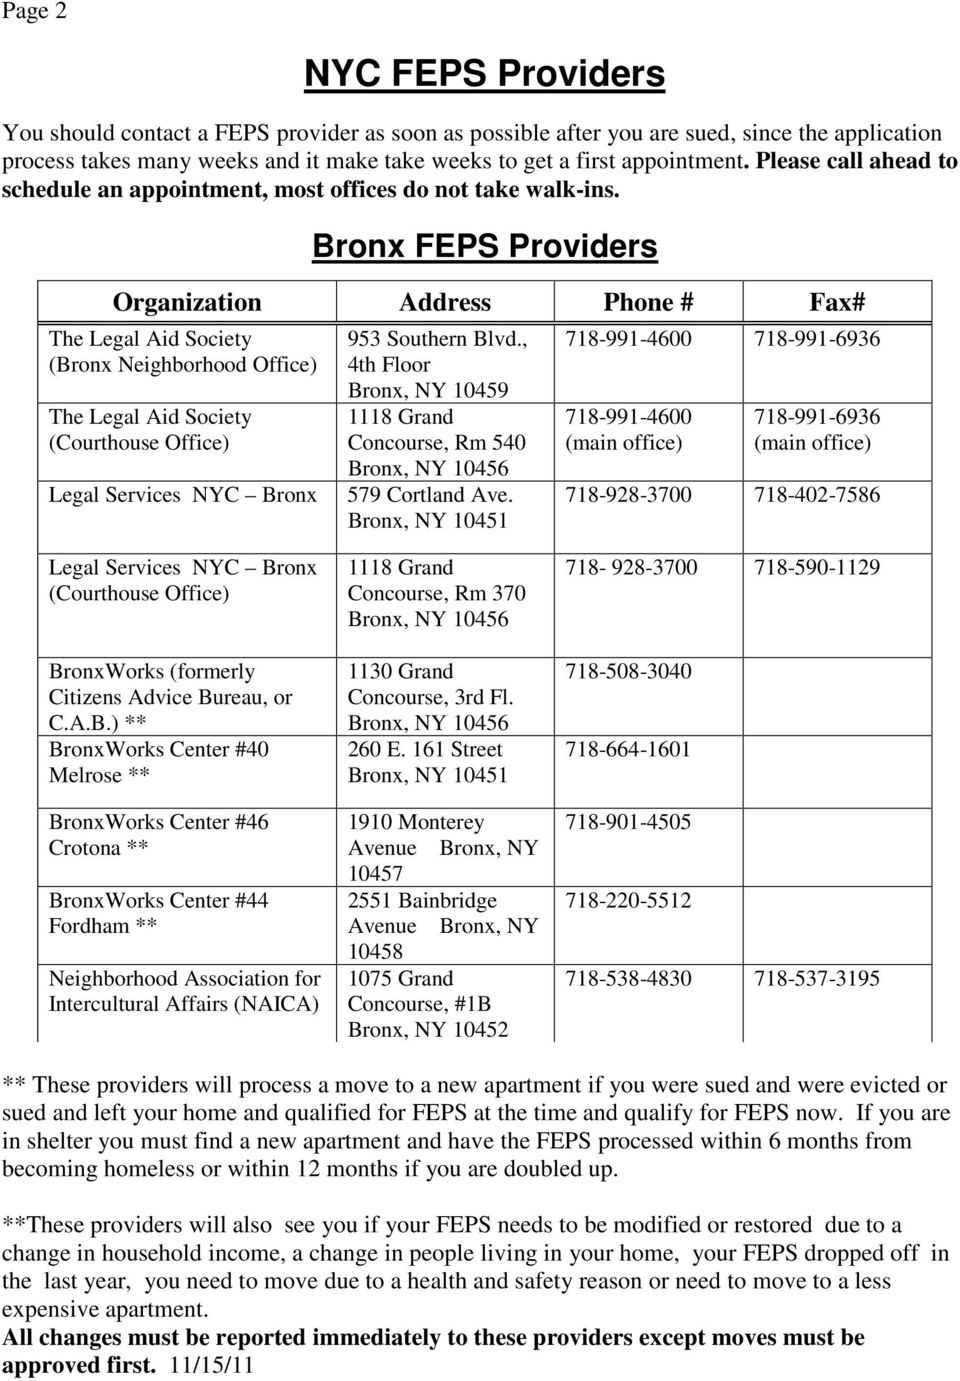 BASIC FACTS ABOUT THE FAMILY EVICTION PREVENTION SUPPLEMENT